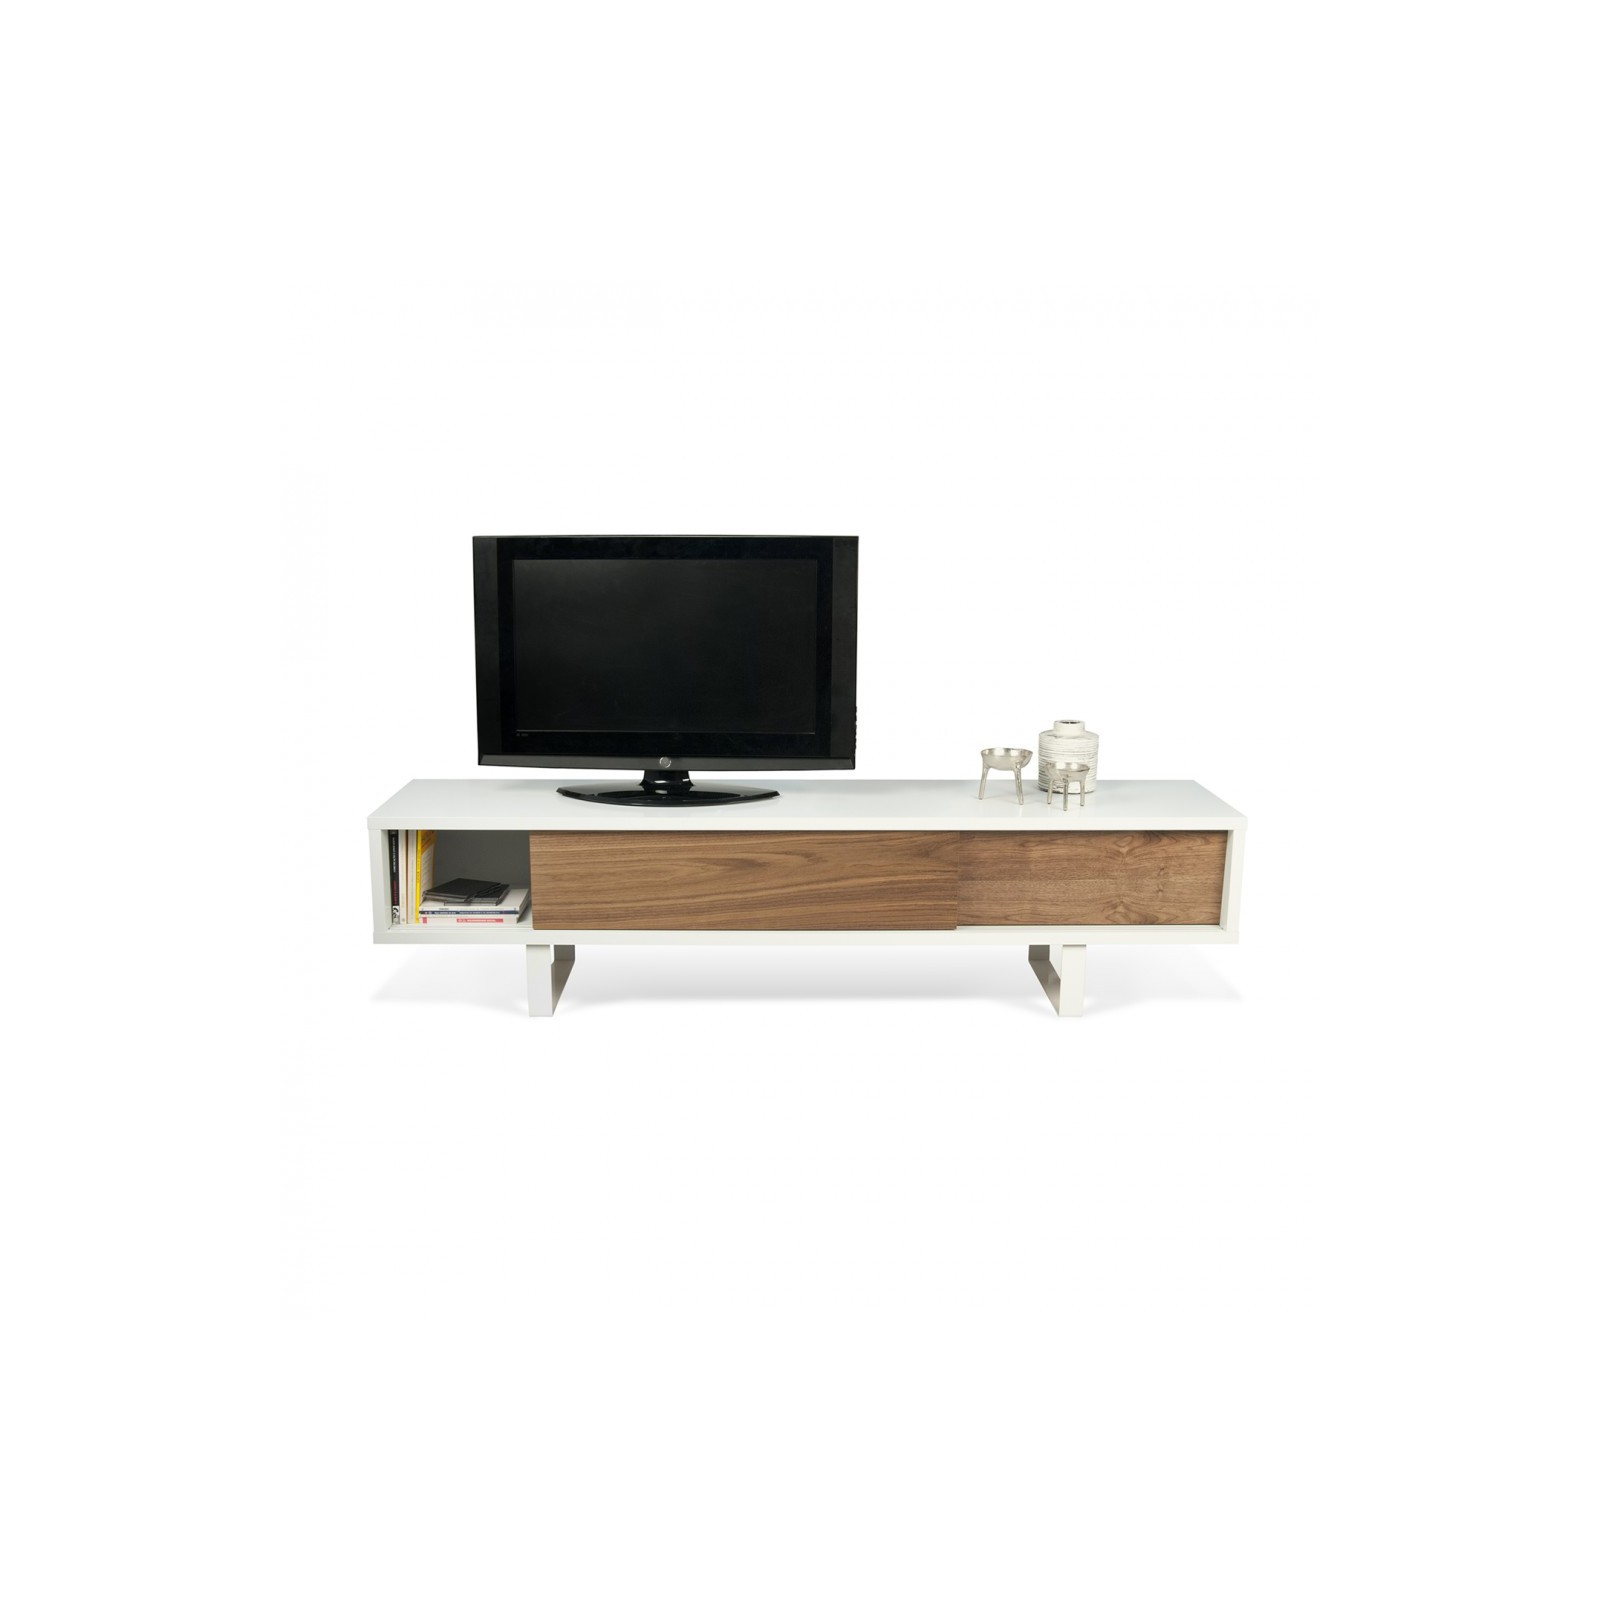 meuble tv fin havane arne concept. Black Bedroom Furniture Sets. Home Design Ideas